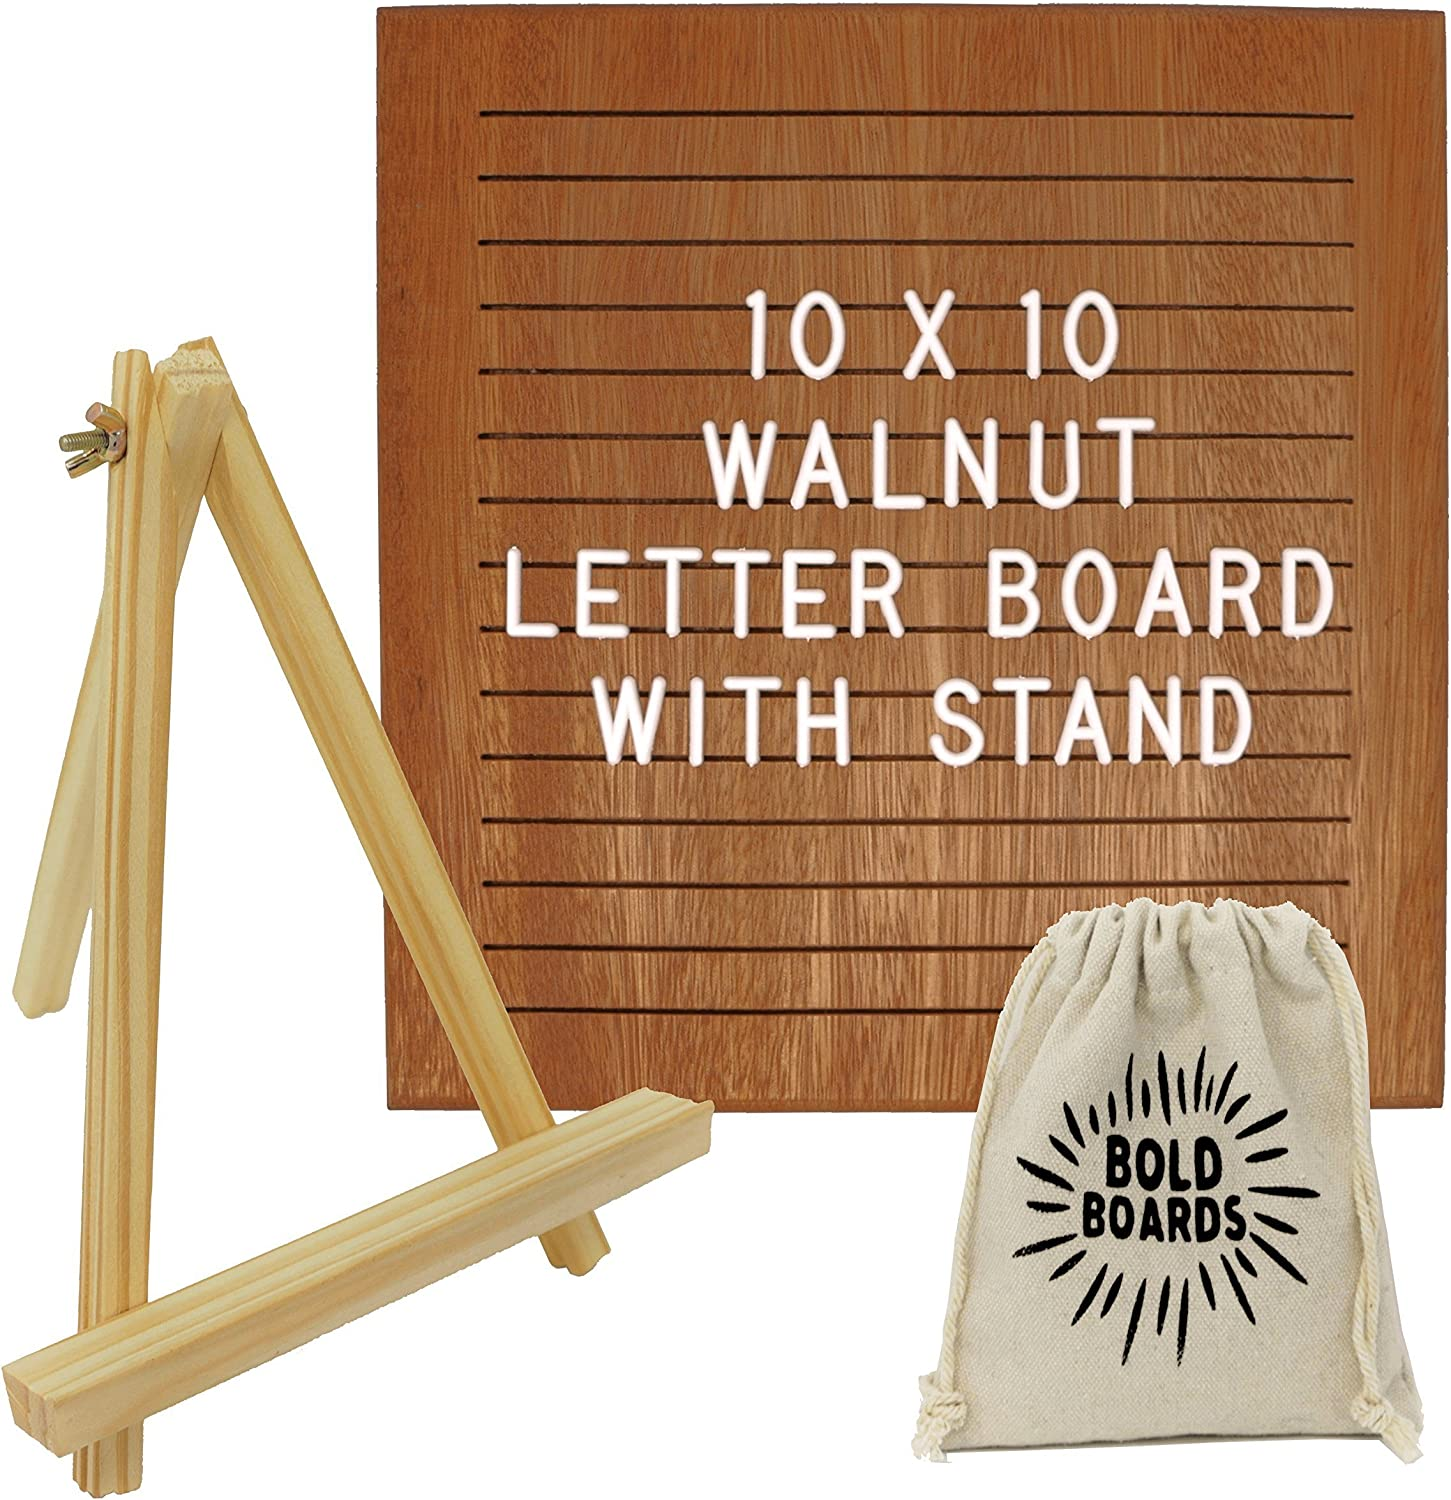 Walnut Chicago Mall Letter Board 10x10 gift Inches with C Wooden Stand Tripod 340